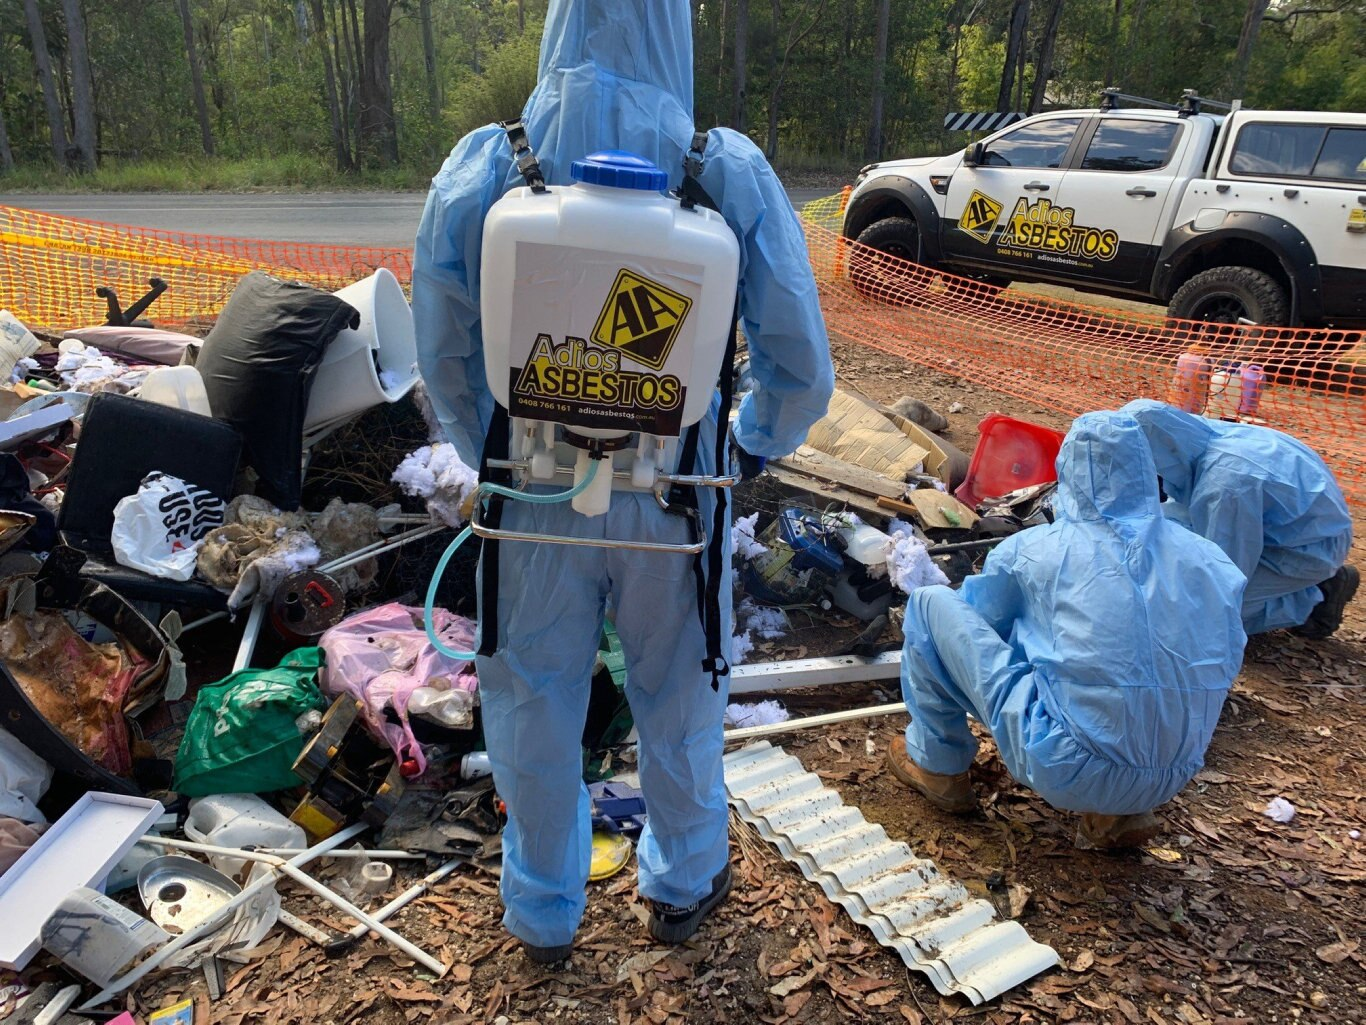 Adios Asbestos was called to clean up piles of dumped asbestos in the Noosa region, which is estimated to cost council about $10,000 for the cleanup.